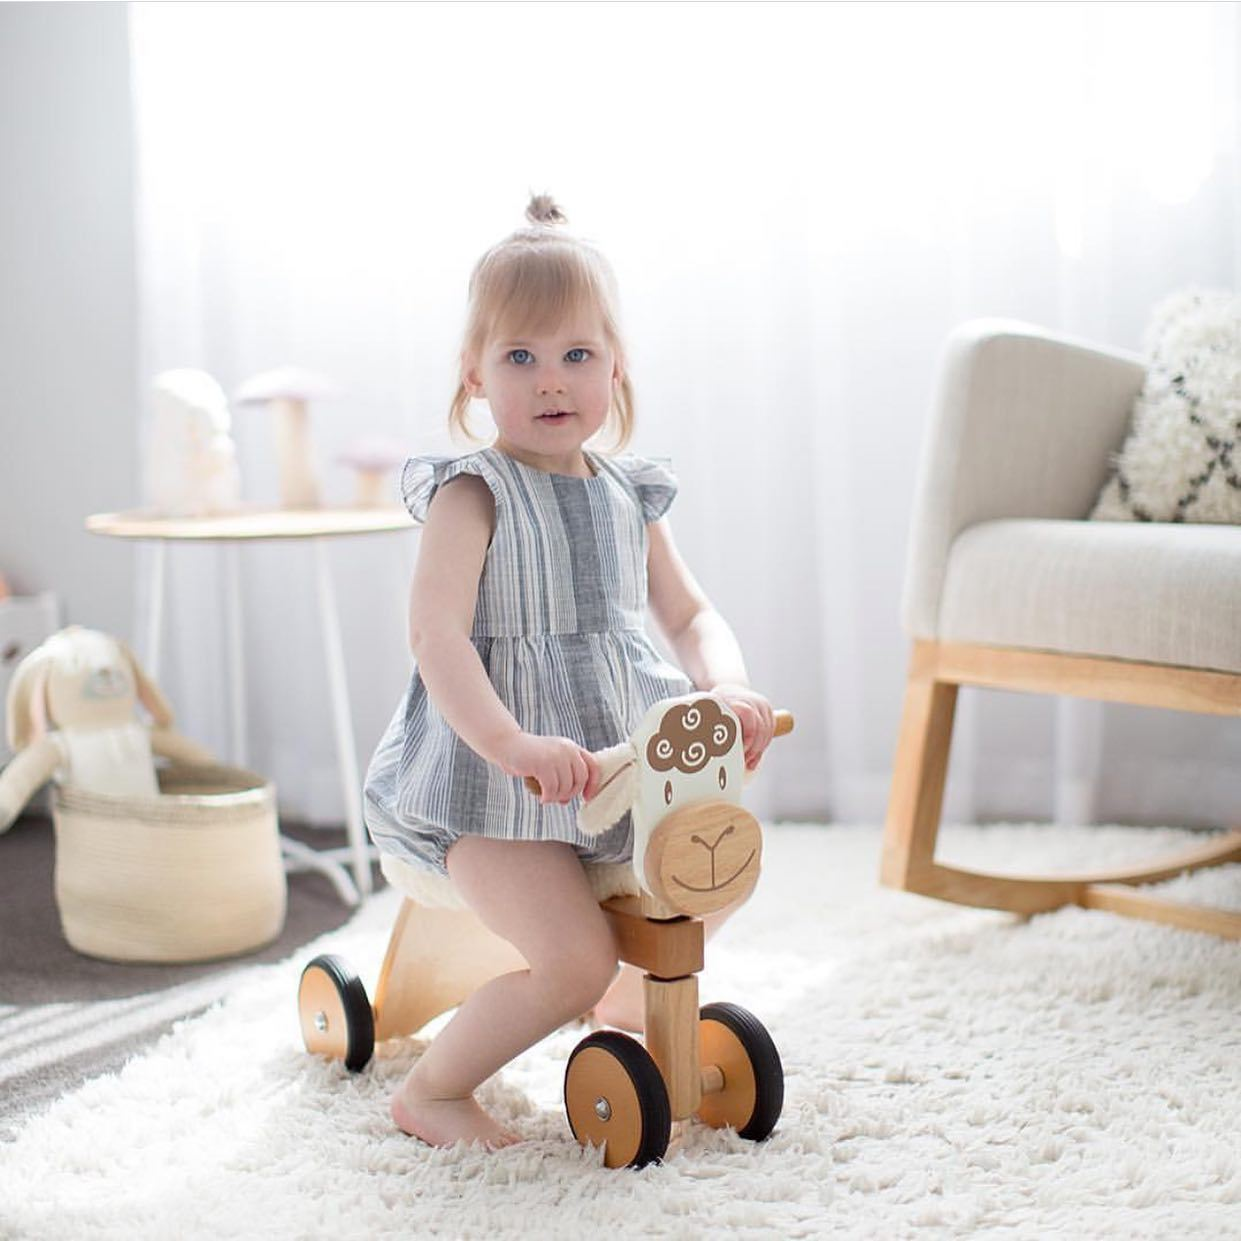 Lambie Padding Rider Ride-On Lamb Im Toy Kids Riding Vehicles at Little Earth Nest Eco Shop